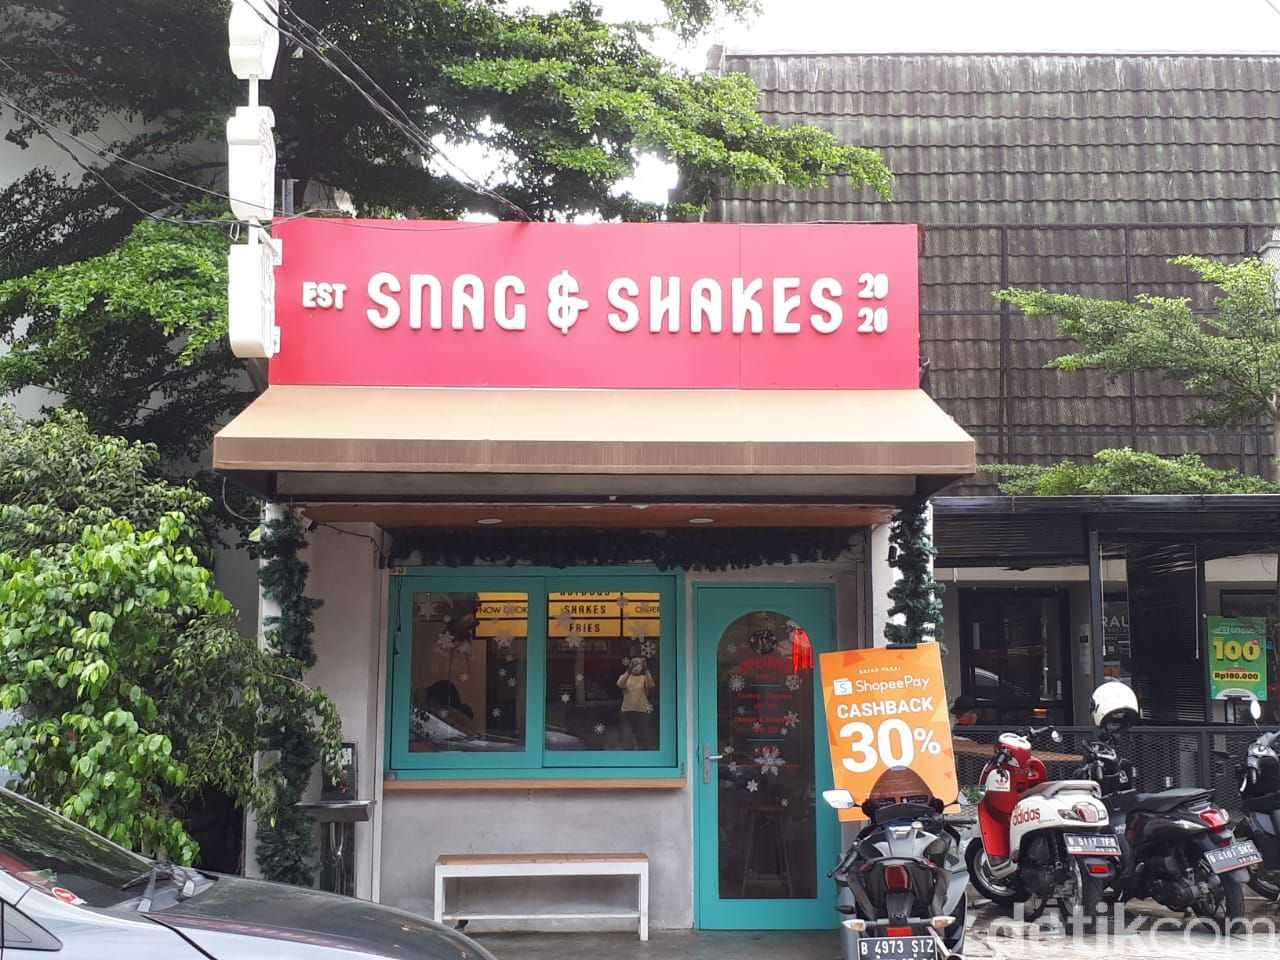 Snag and Shakes: Cicip Hot Dog Topping Nasi Gila di Gerai Giorgino Abraham